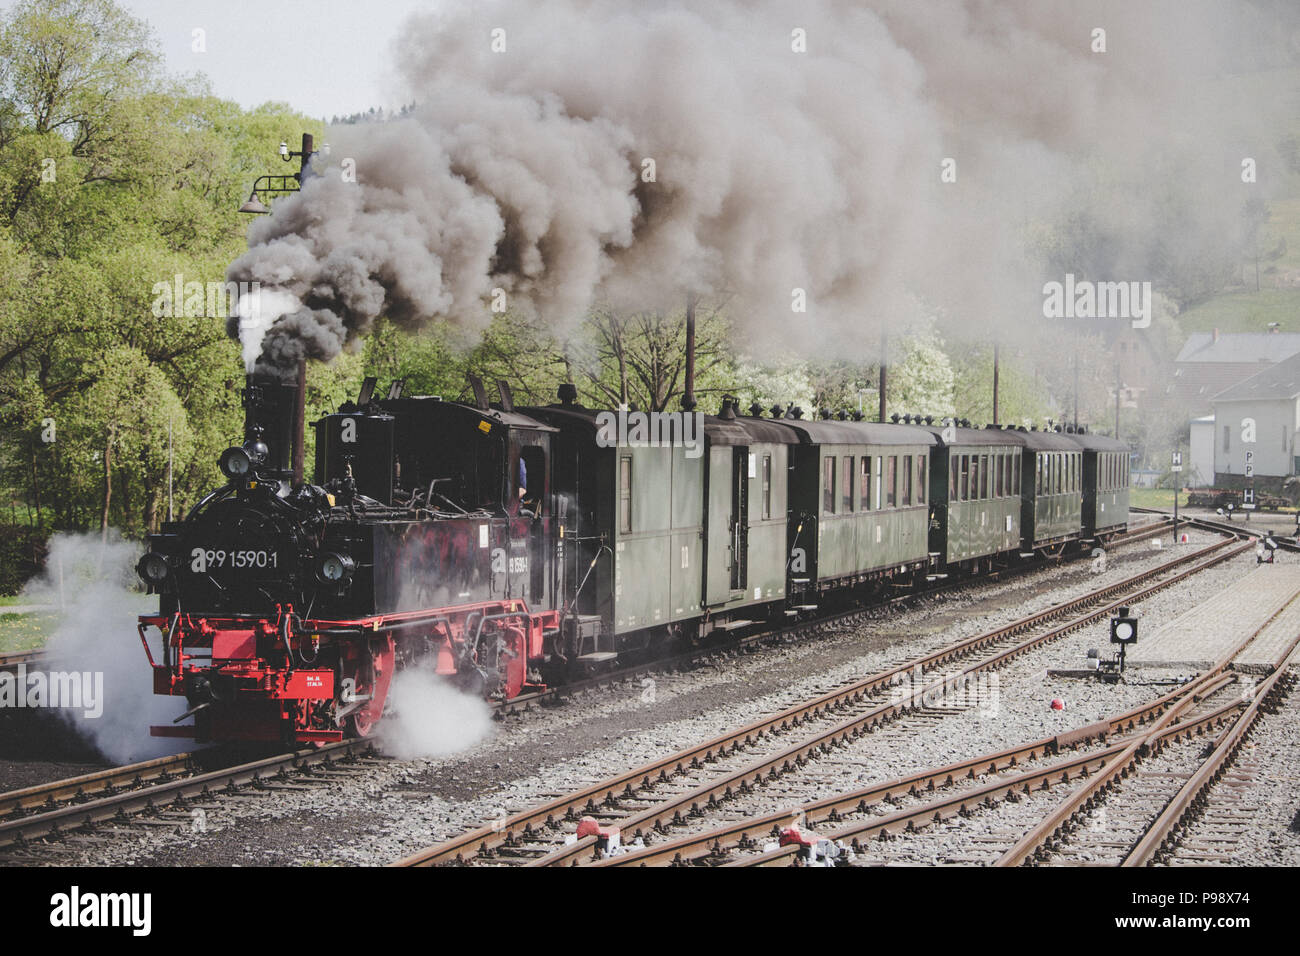 Steam Train in Station - Stock Image